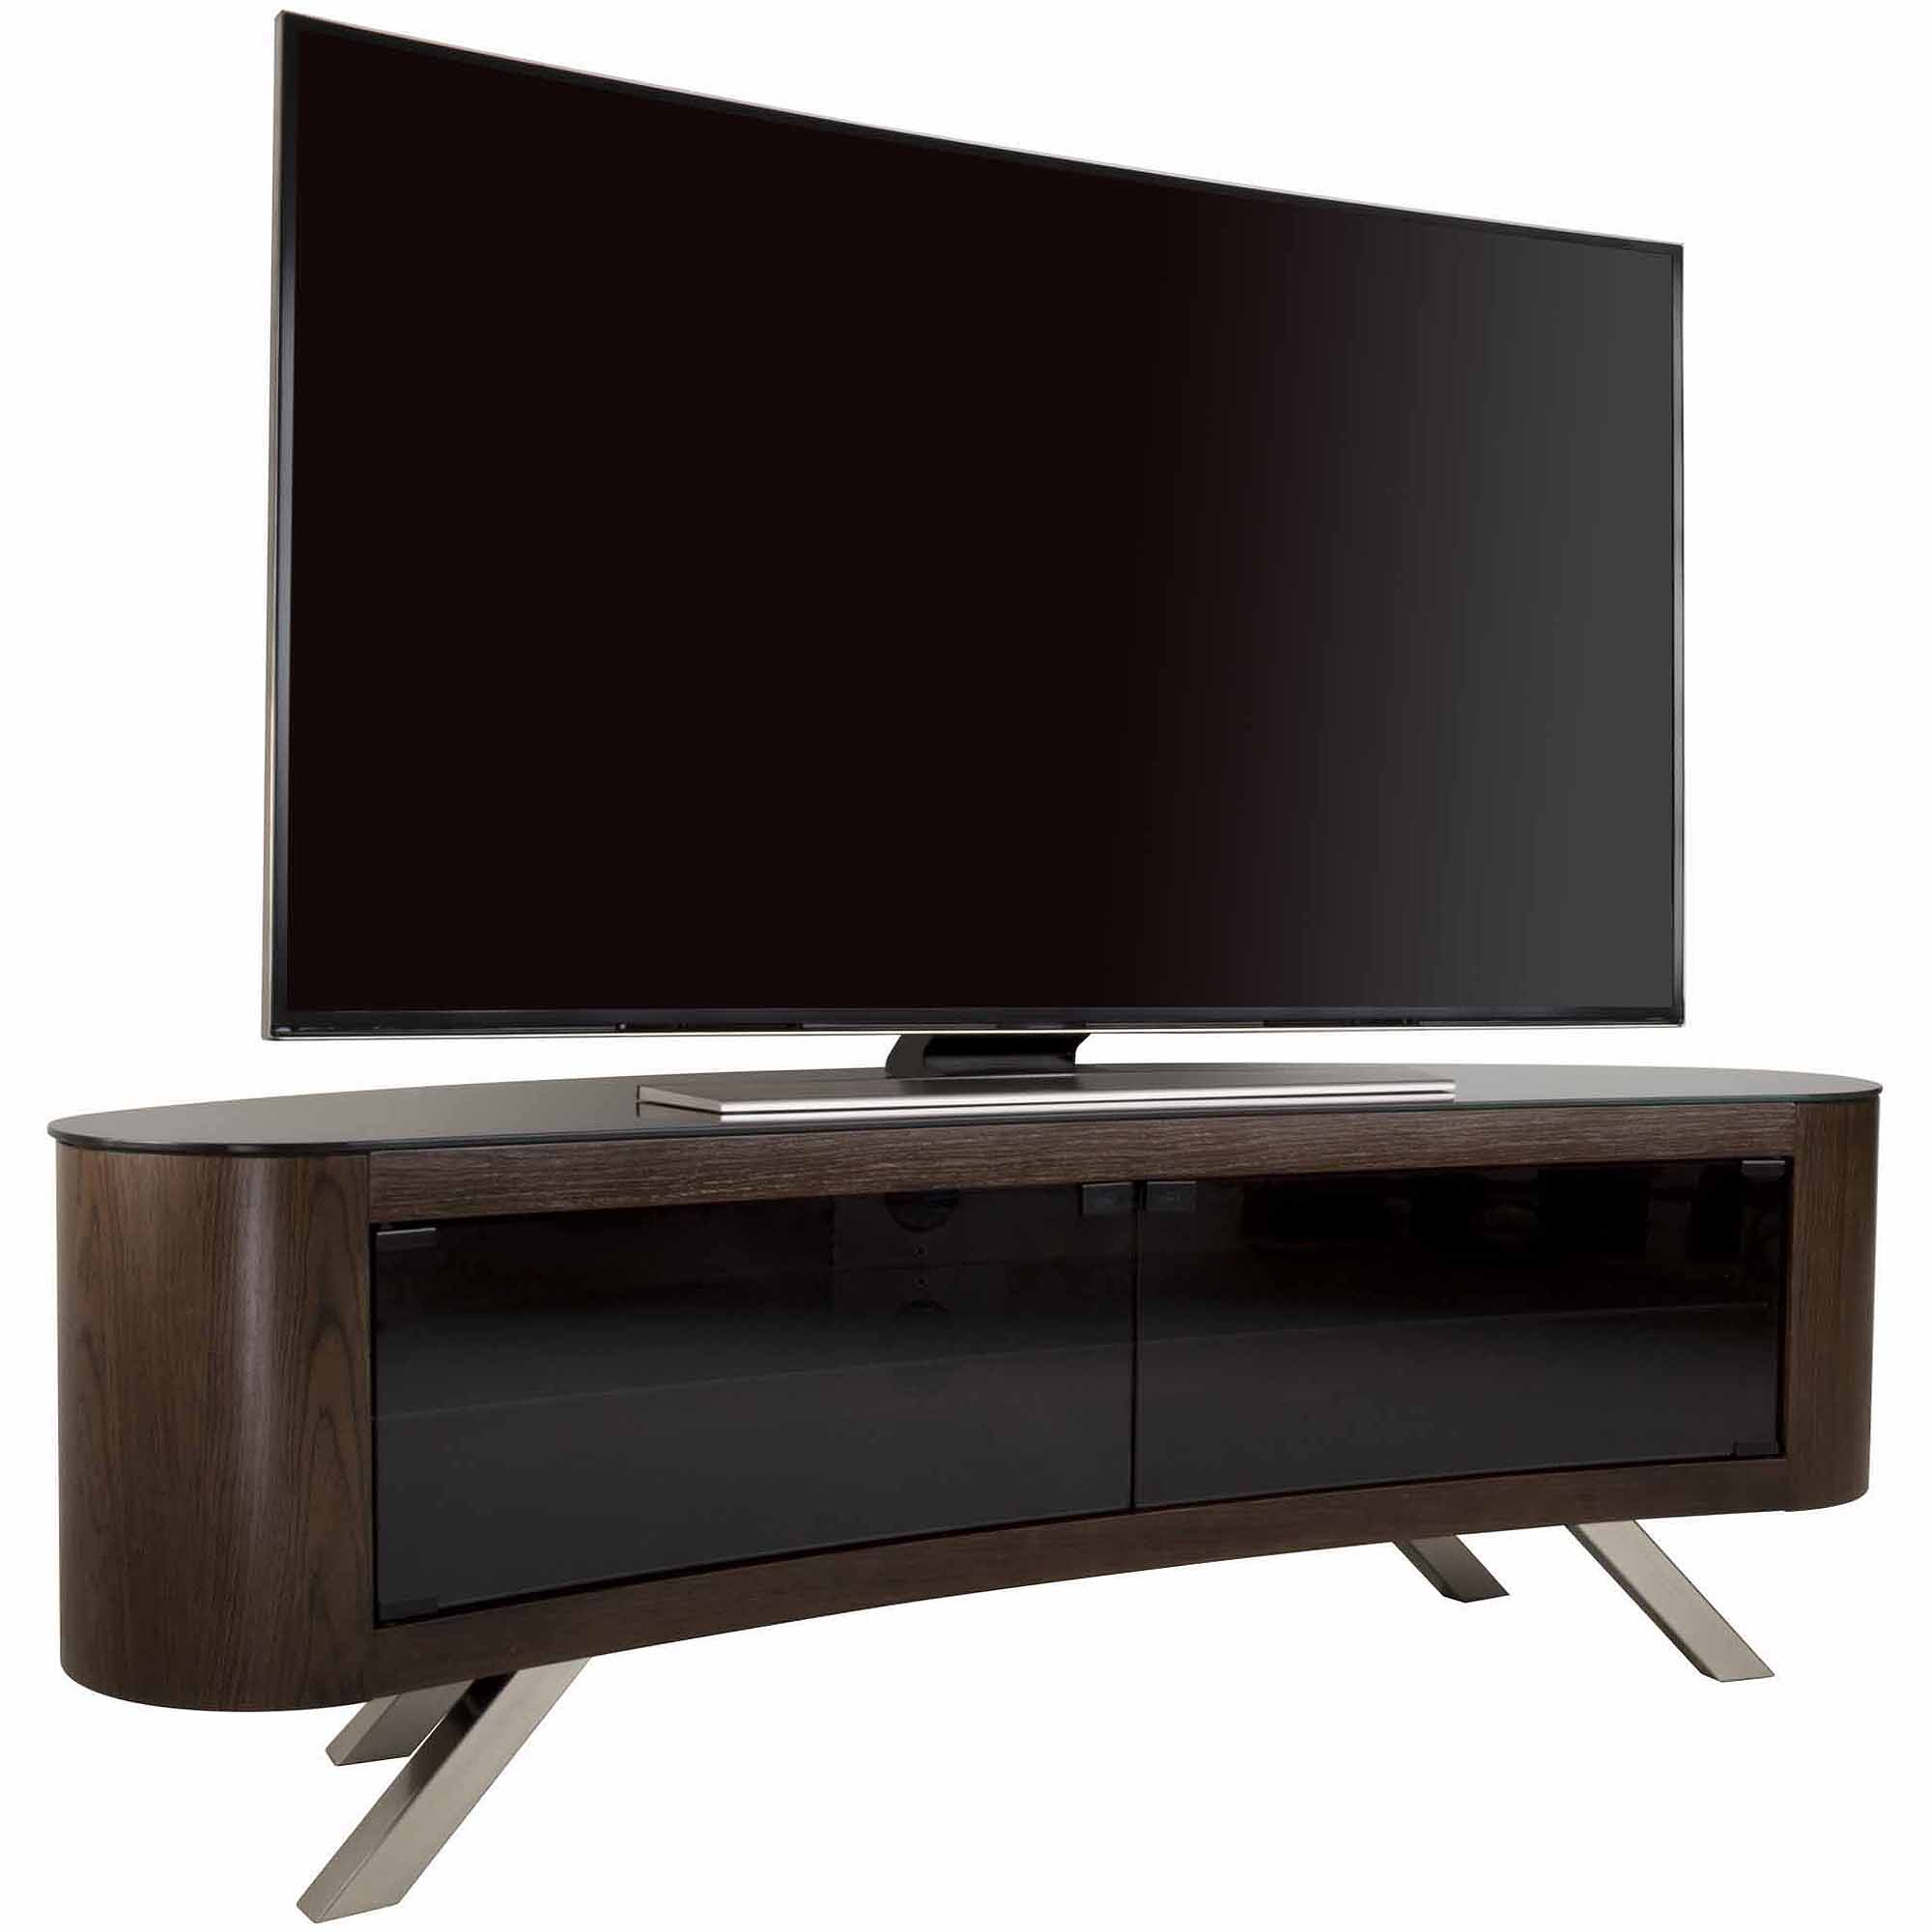 """Fashionable Tv Stands For 70 Inch Tvs Regarding Avf Bay Curved Tv Stand For Tvs Up To 70"""" – Walmart (View 5 of 20)"""